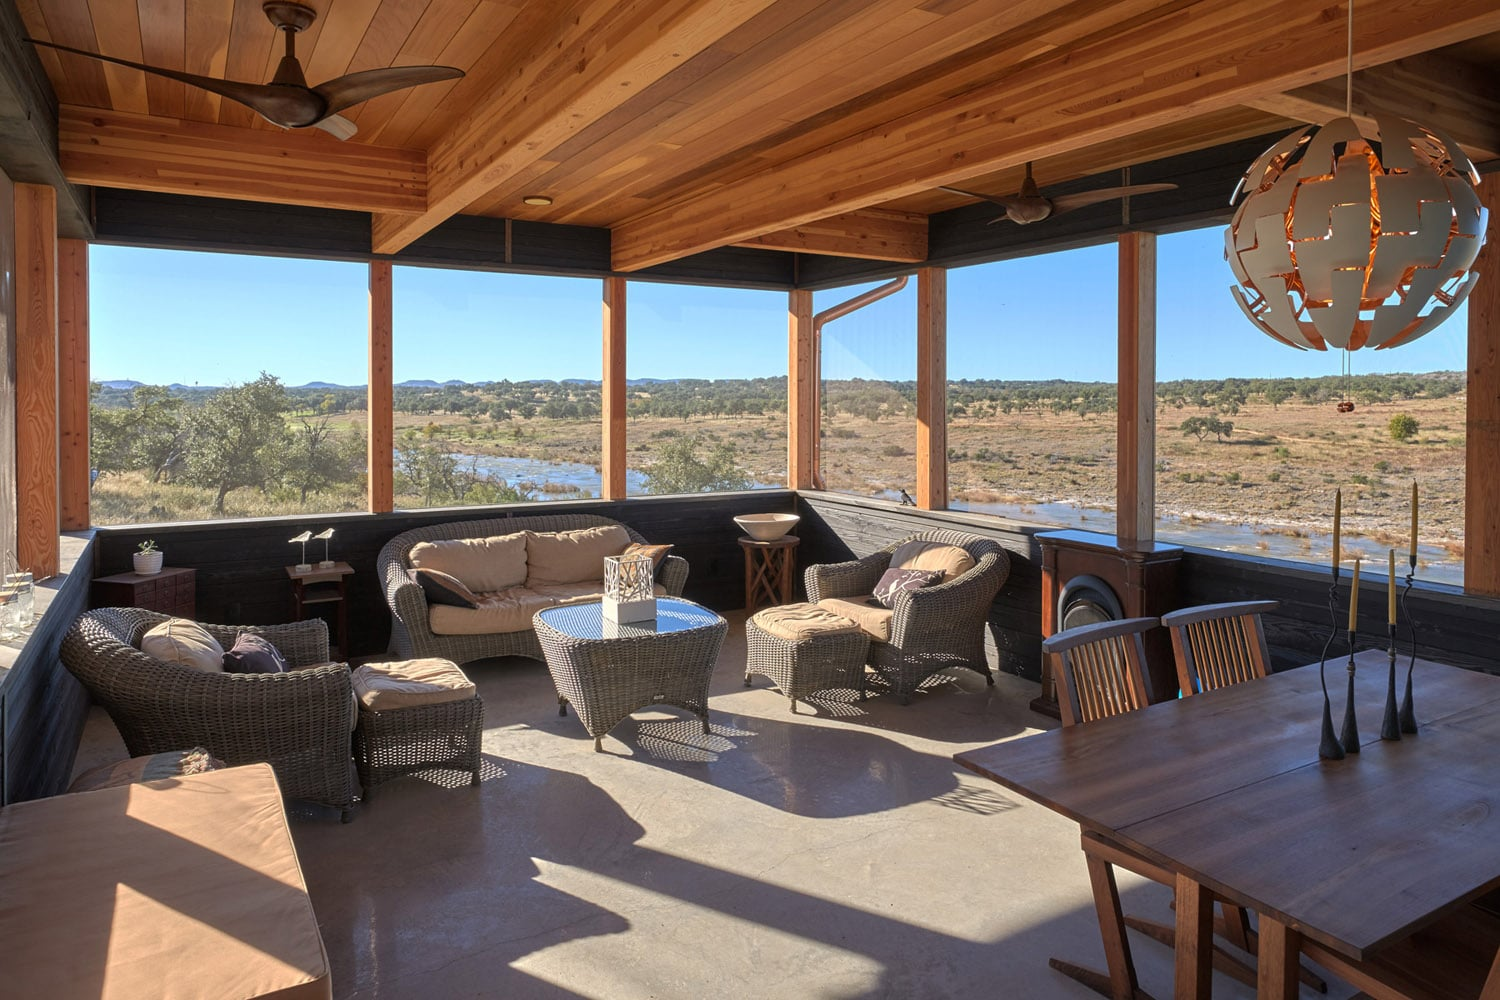 Epic views at Jeff Derebery's custom Lindal Hestia home in the Texas Hill Country, Johnson City